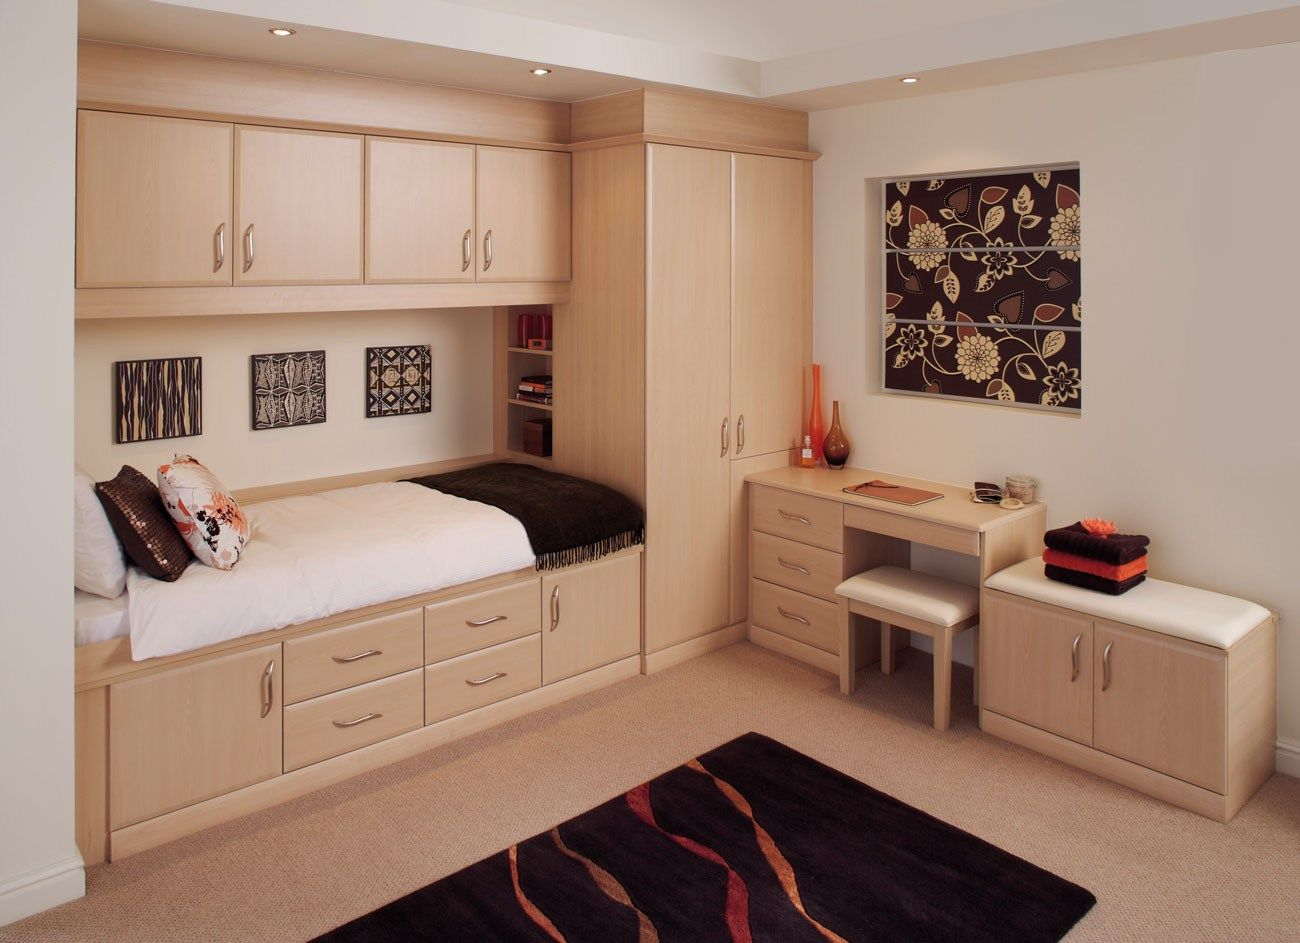 marvelous fitted bedroom hpd313 fitted wardrobes al habib panel doors. Interior Design Ideas. Home Design Ideas